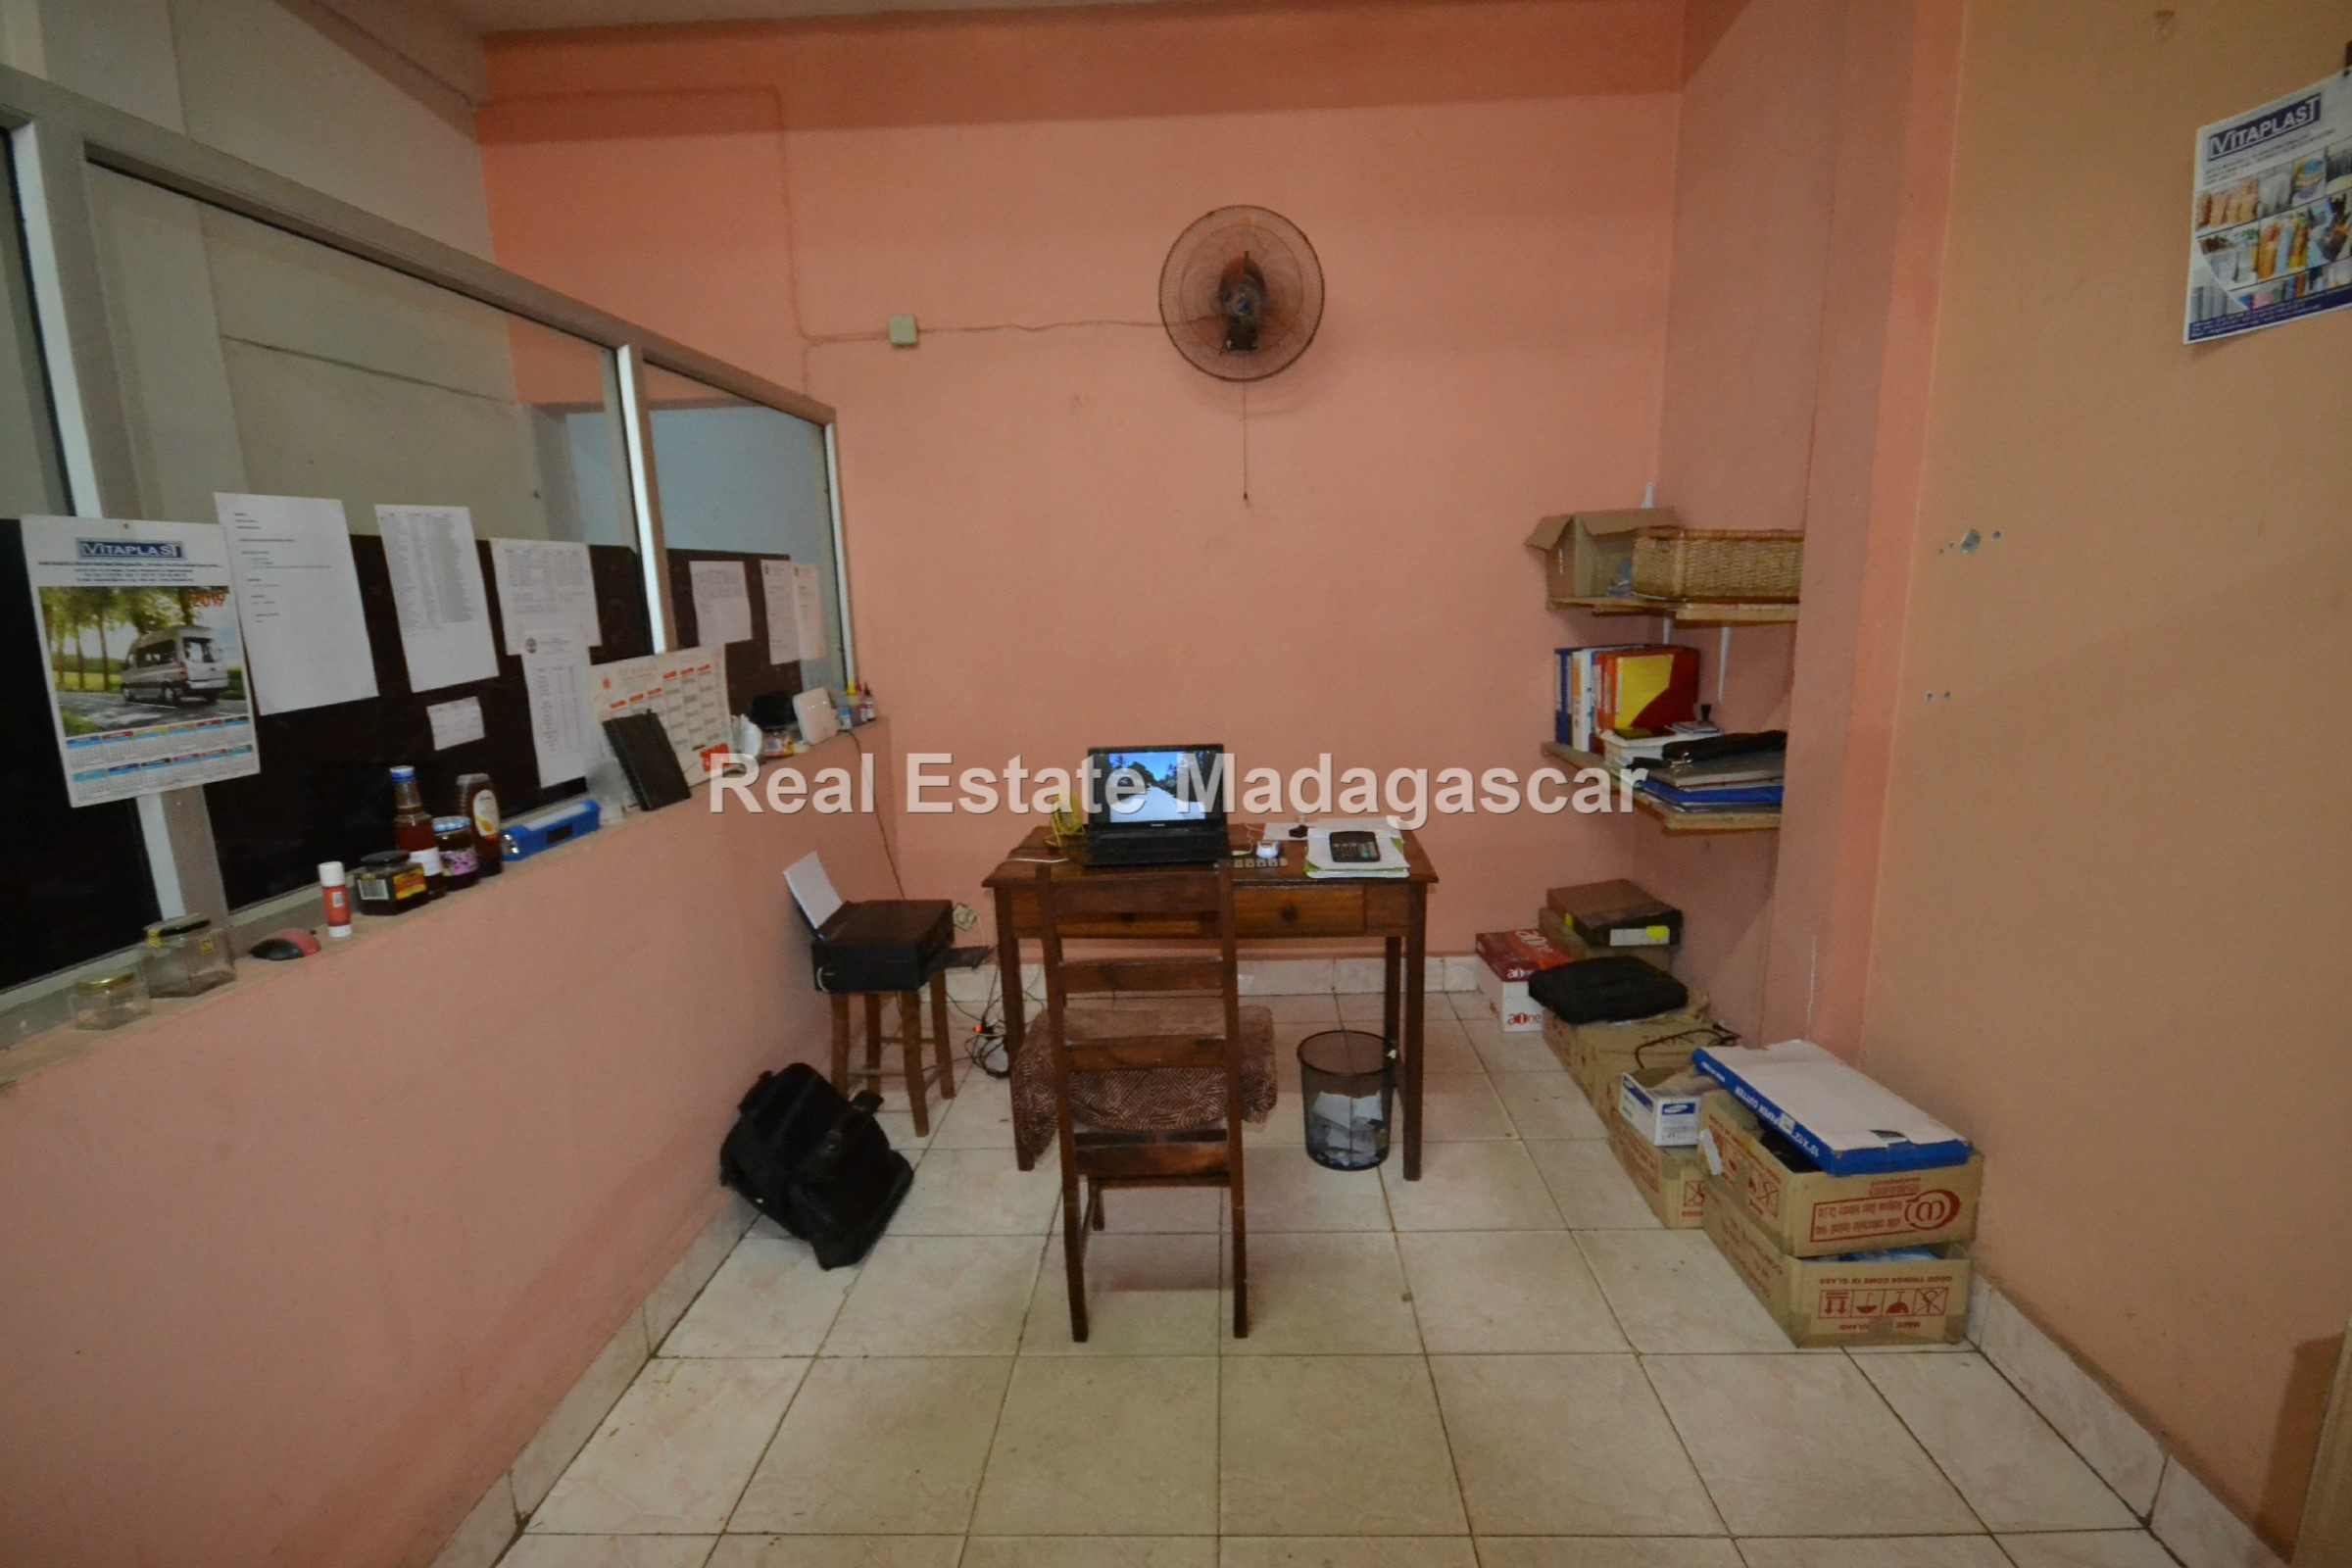 mahajanga-commercial-premises-for-rent-1.jpg